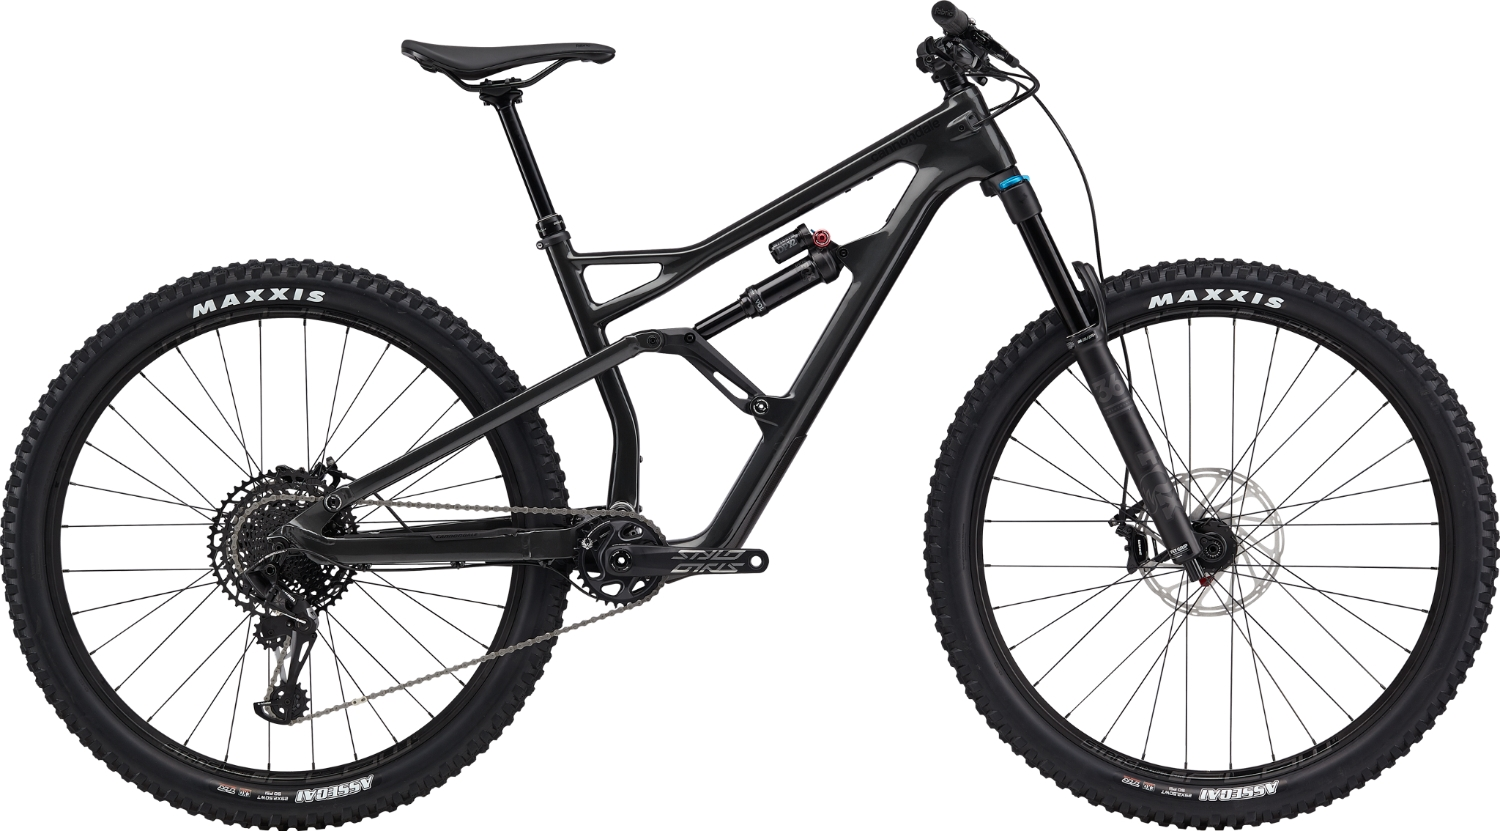 Bicicleta full suspension Cannondale Jekyll Carbon 29 3 Grafit 2020